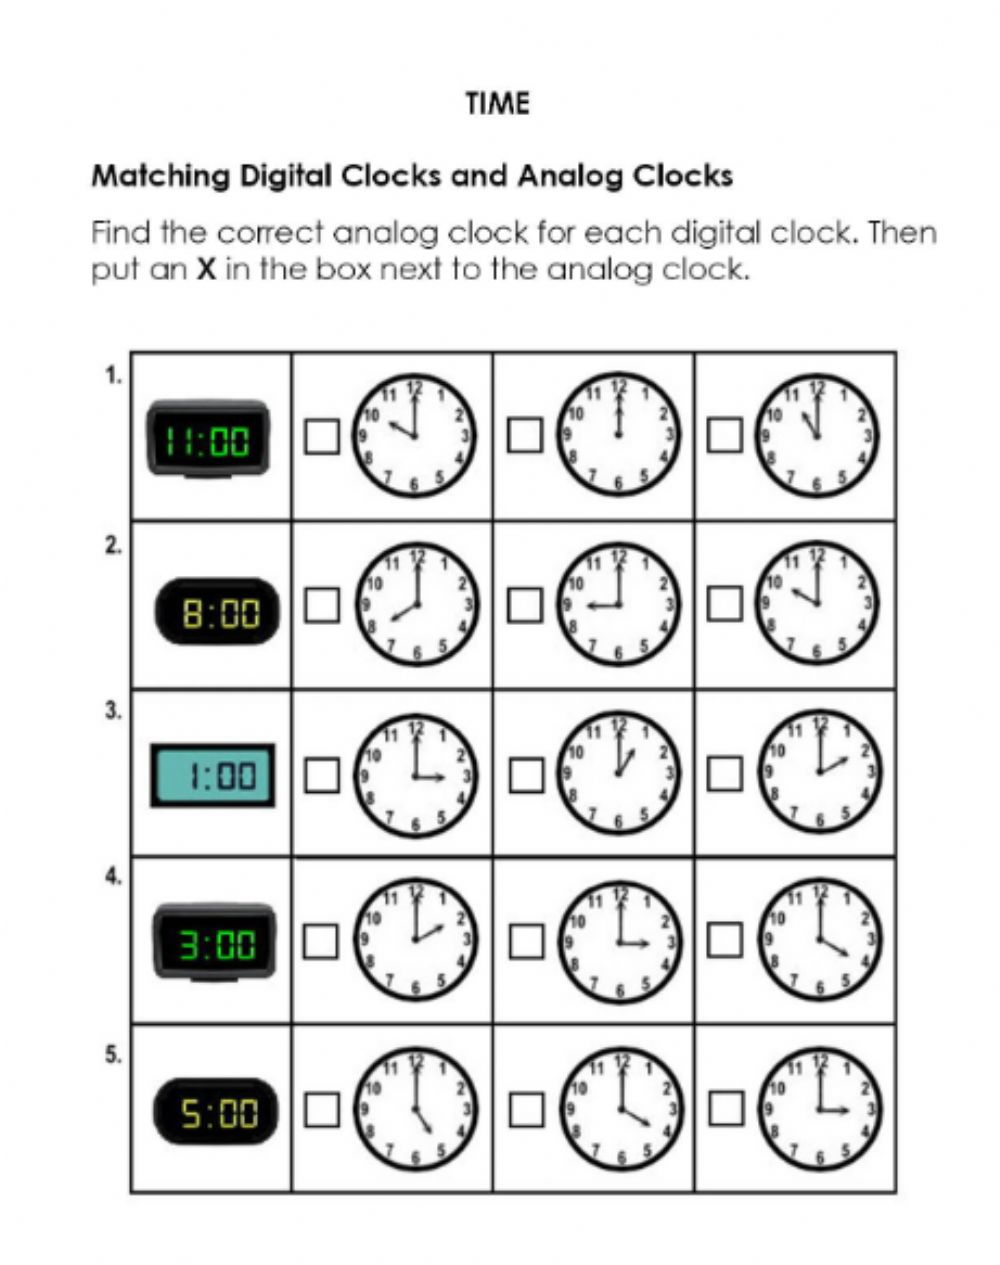 medium resolution of Match Digital and Analog Clocks worksheet